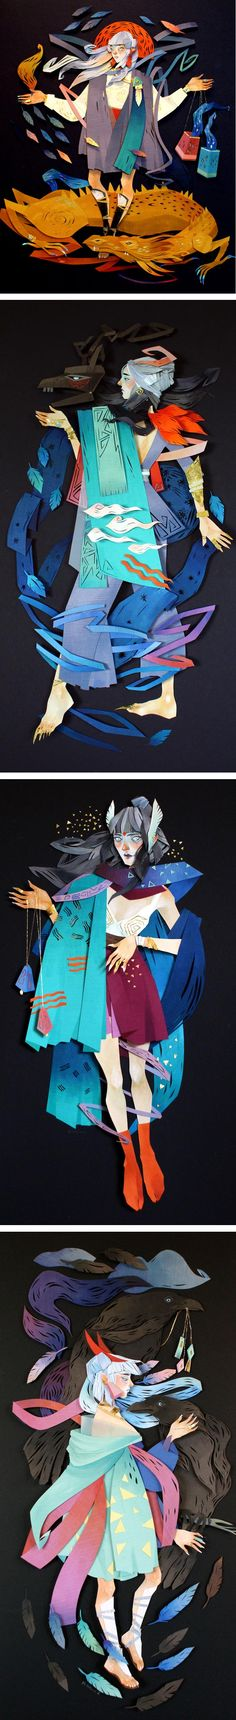 Morgana Wallace crafts fantastical female heroines with cut-paper collage. Each piece has multiple layers and textures that produce a 3D effect.